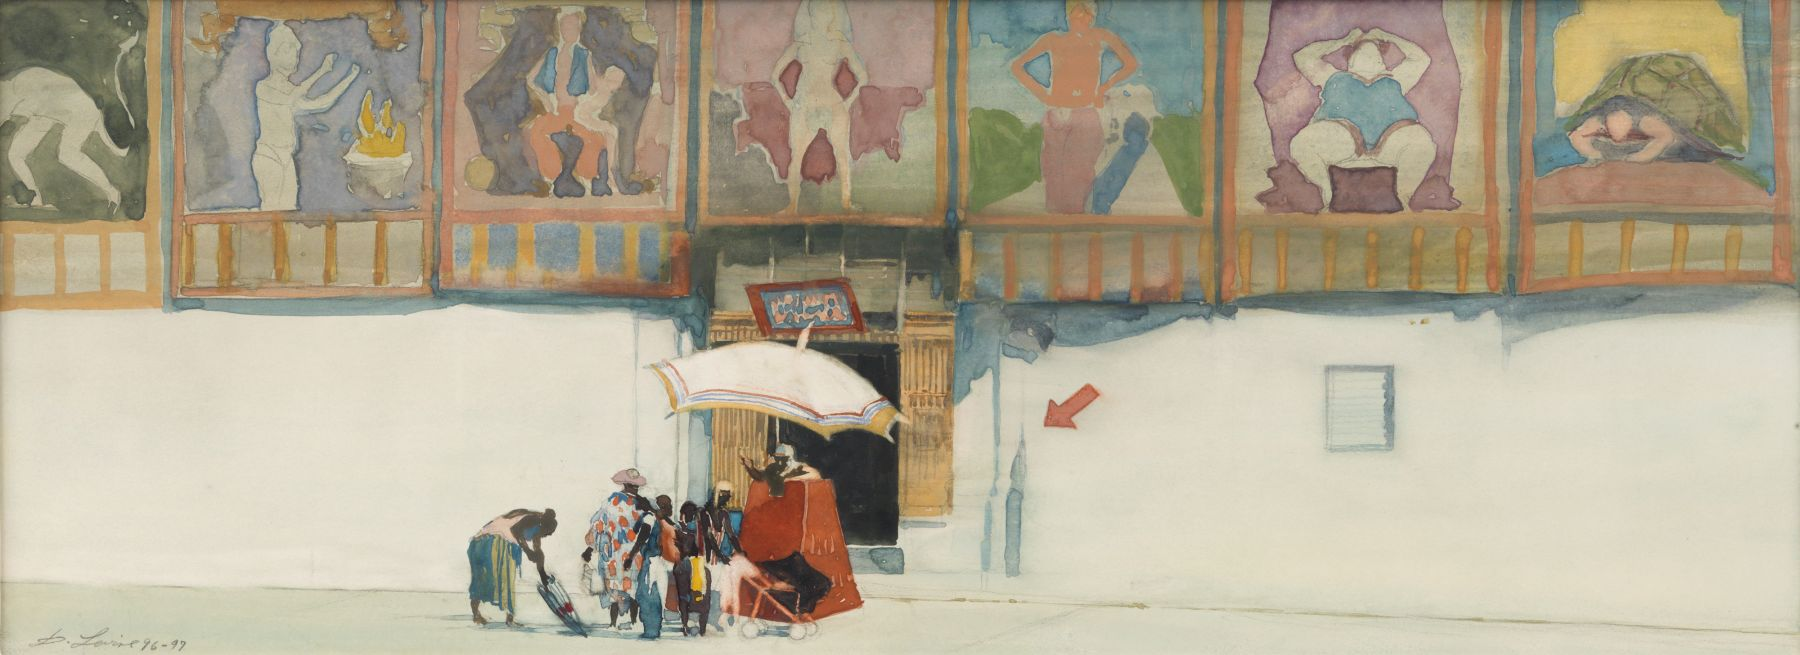 david levine, Street of Freaks, 1996-97, watercolor, 7 3/8 x 20 inches, Private collection, Greenwich, CT